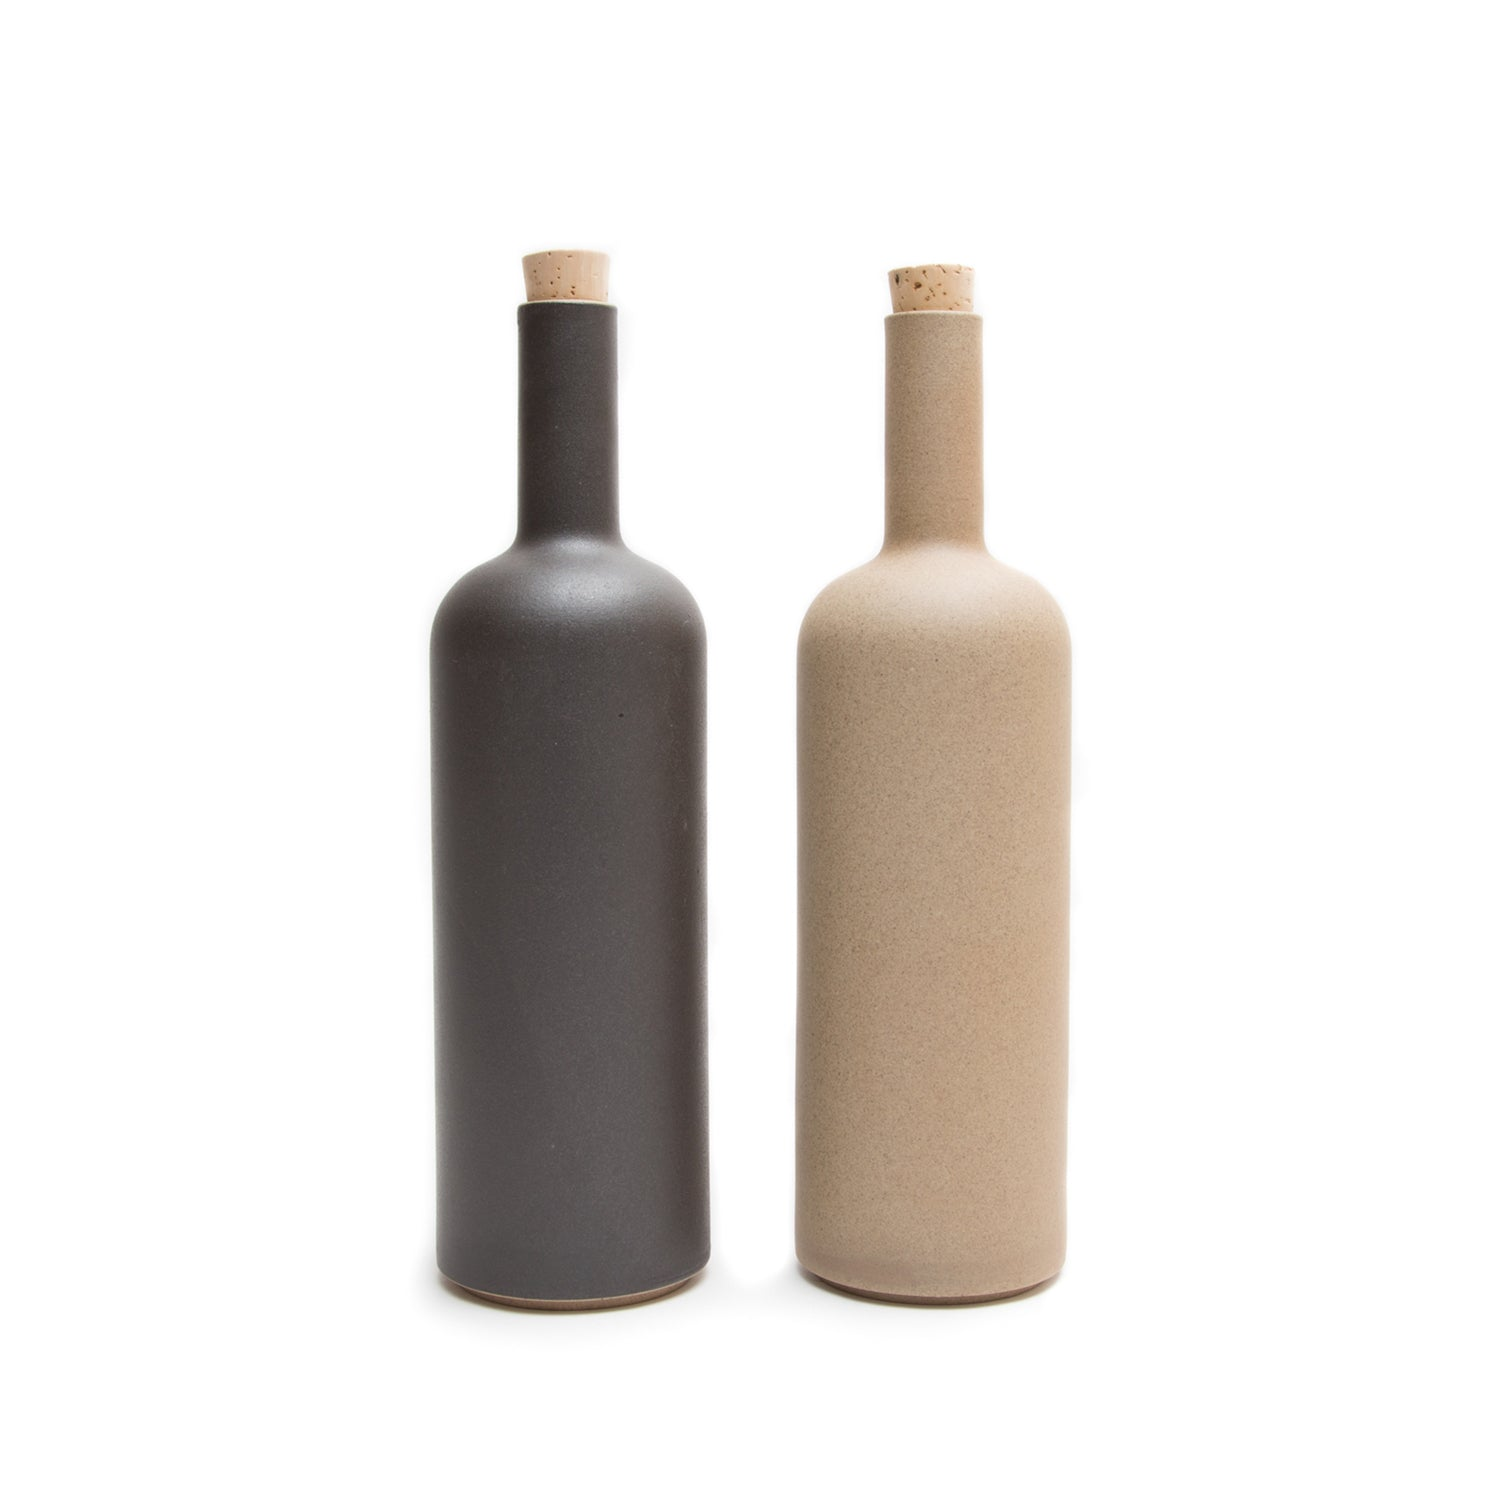 Bottle-Bottle-Hasami Porcelain-Black-JINEN